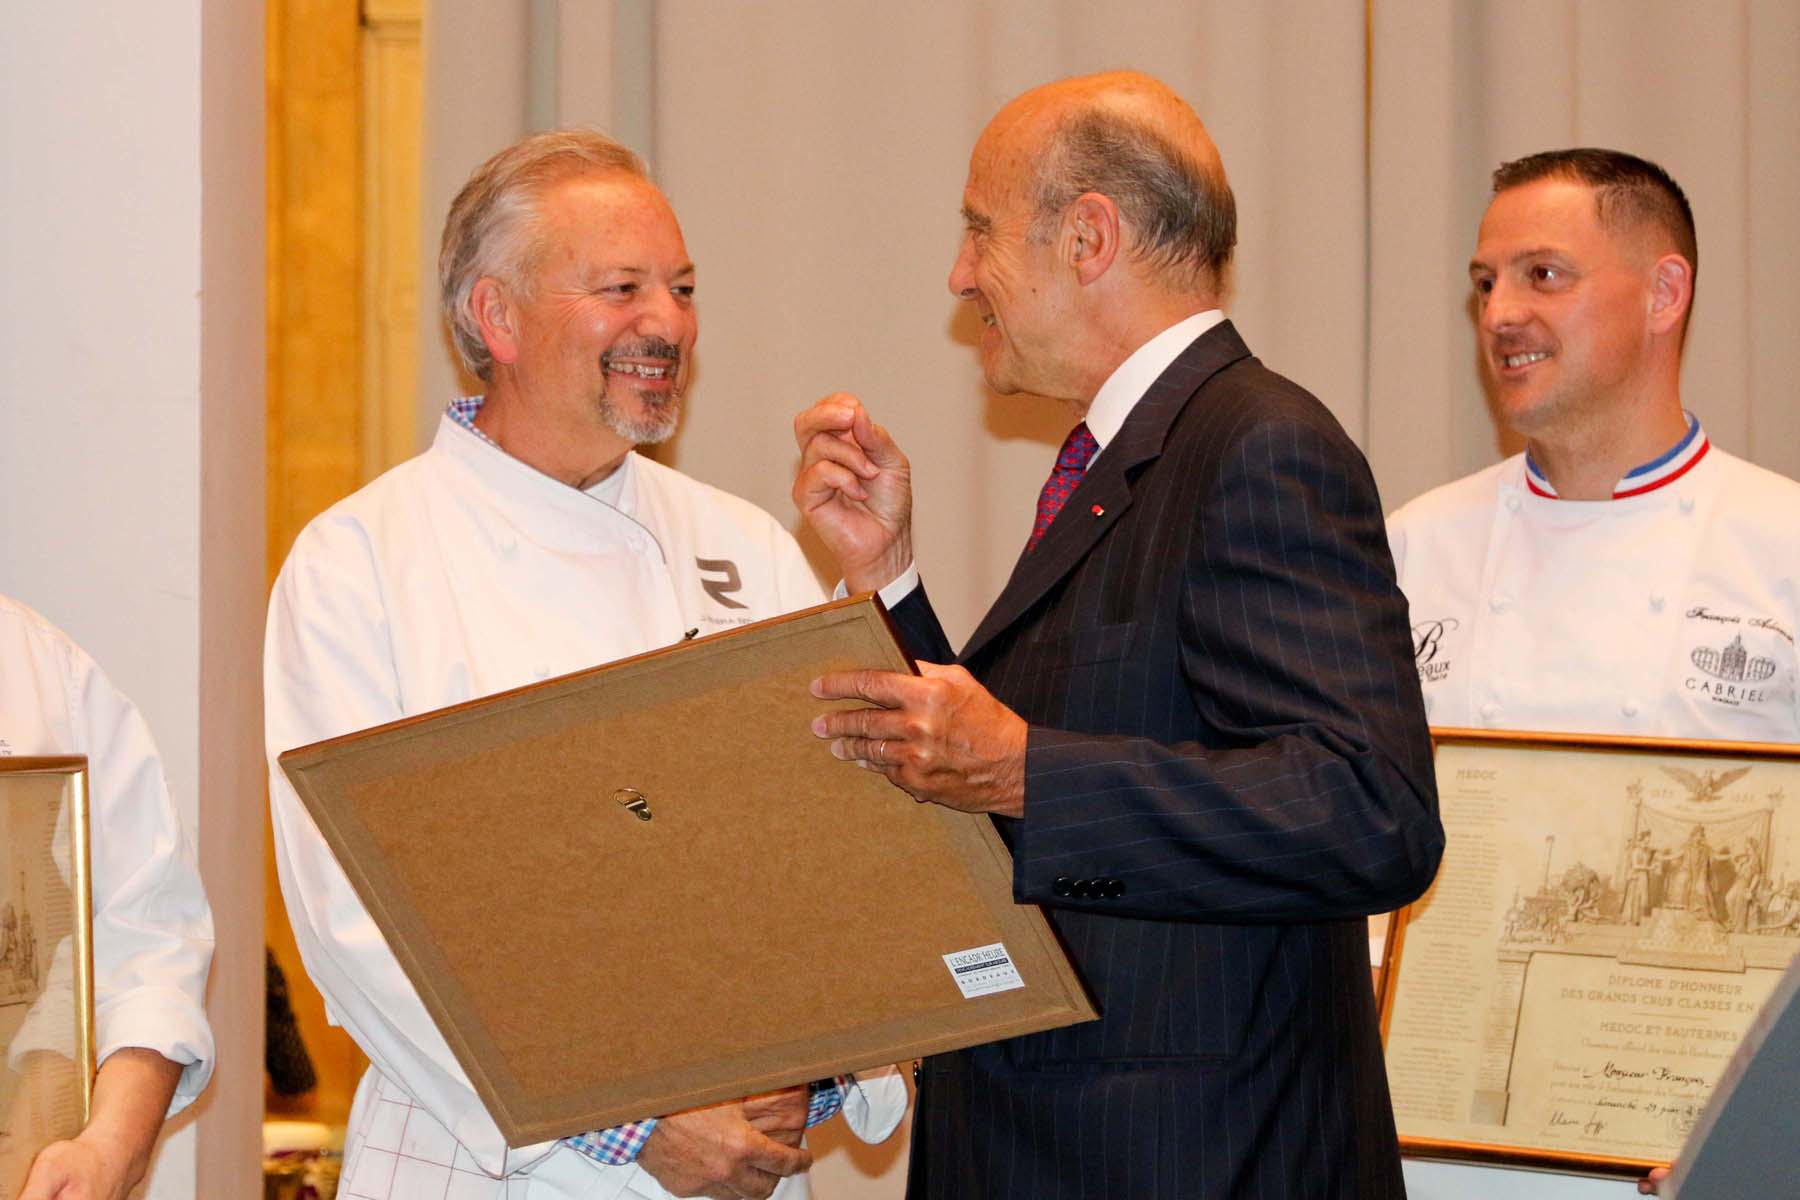 CHEF OF NOTE JOHN SEDLAR AND FRANÇOIS ADAMSKI BEING PRESENTED WITH THE DIPLOME D'HONNEUR DES GRANDS CRUS FROM MAYOR ALAIN JUPPÉ.